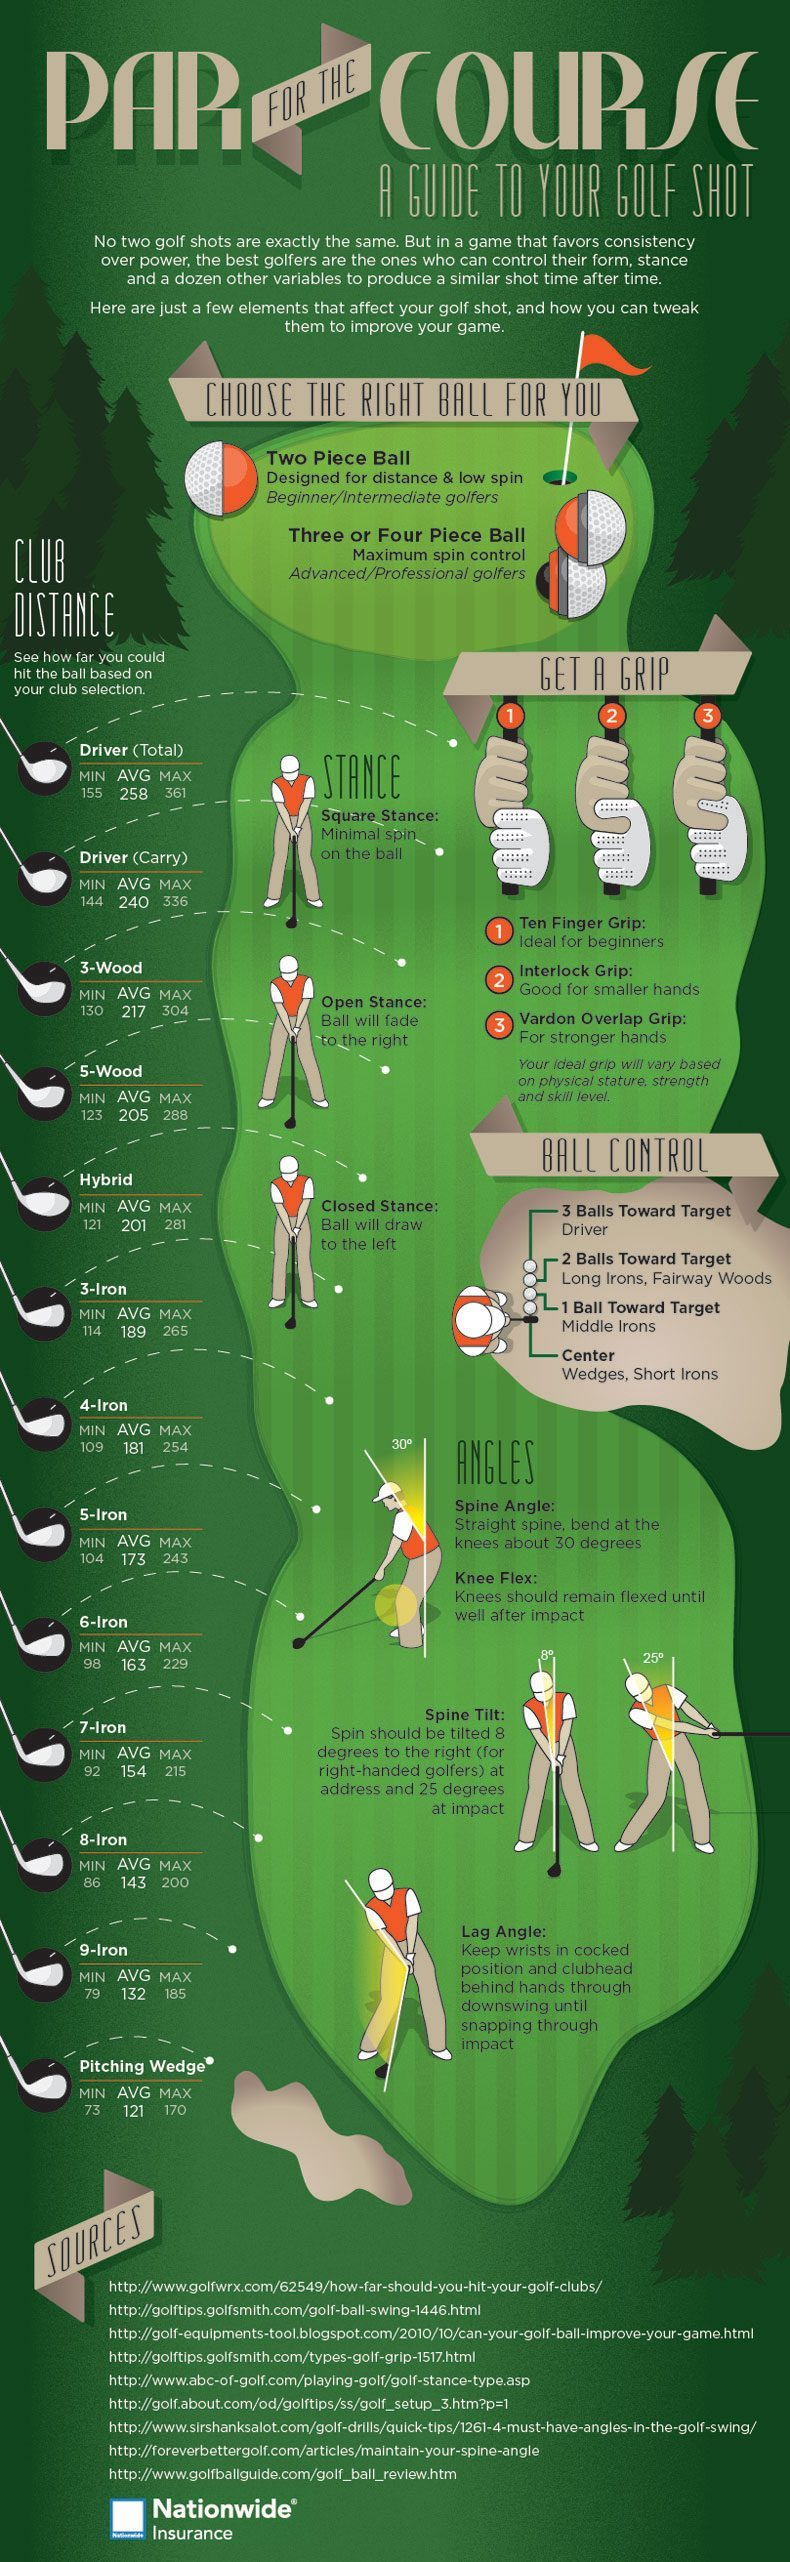 Golf club distances and golf swing basics infographic